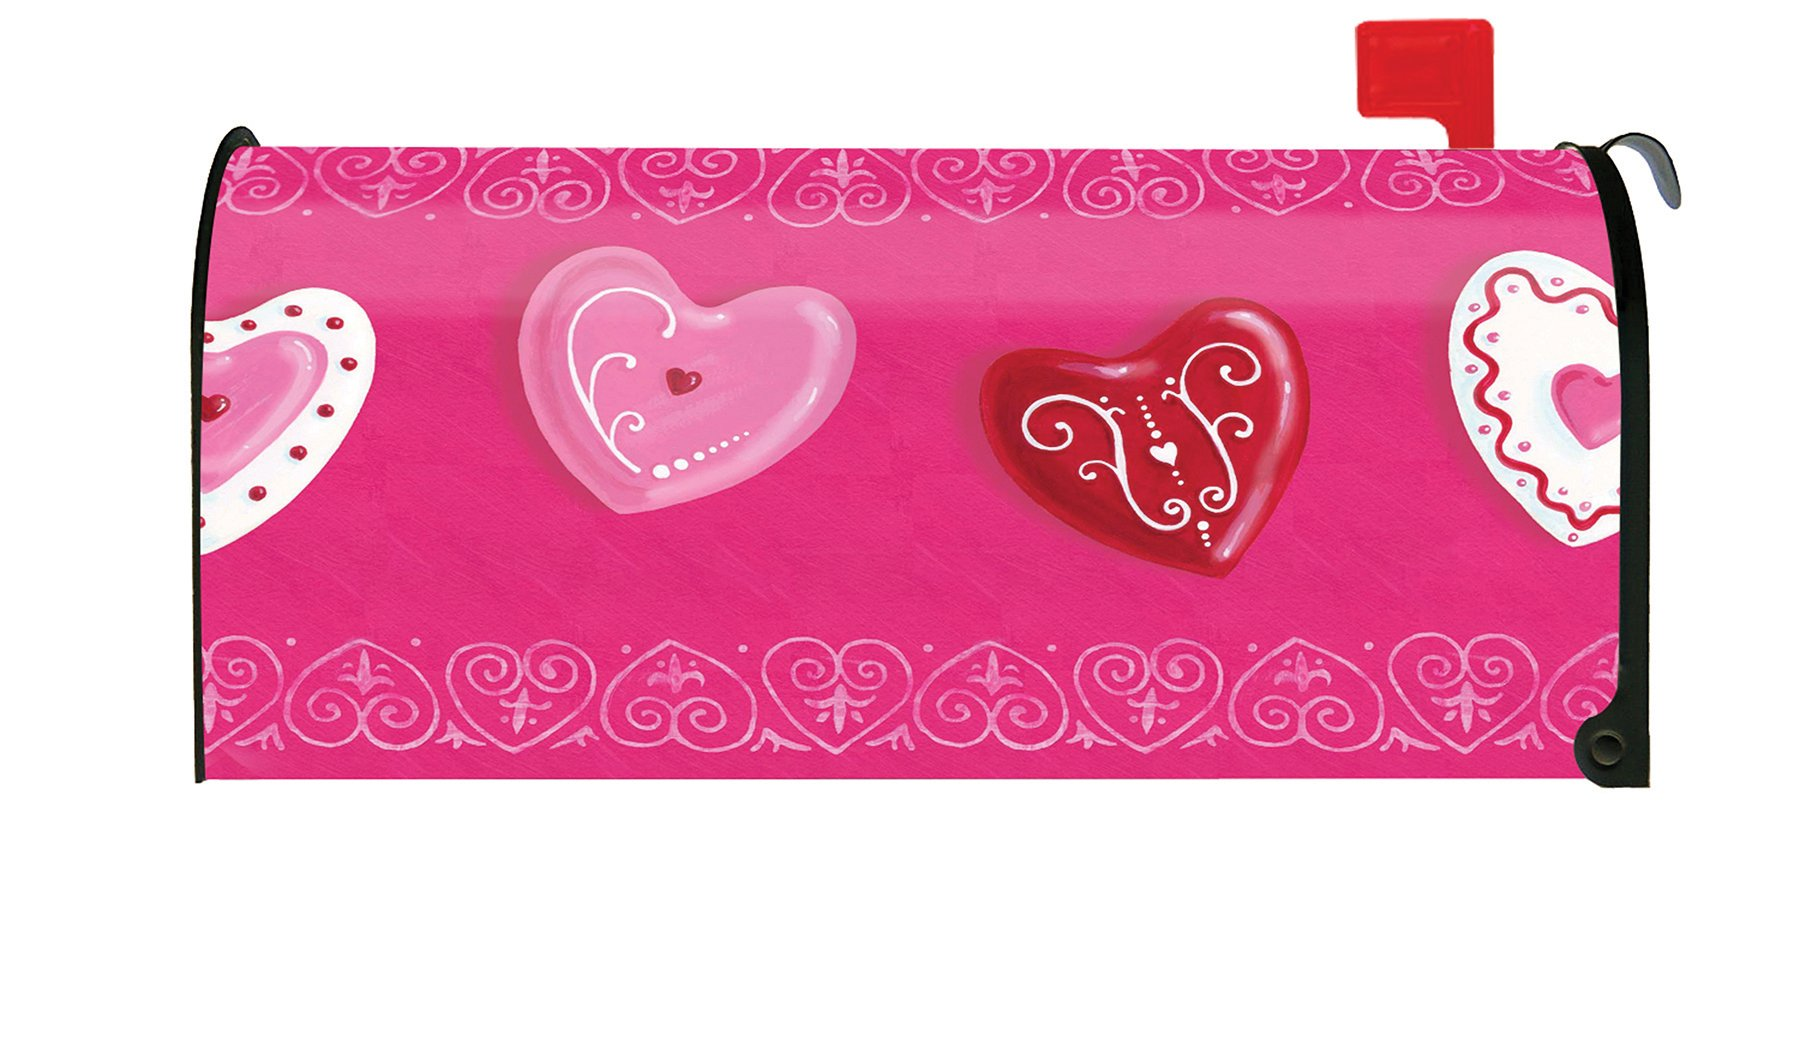 Toland Home Garden Heart Cookies Cute Valentine Dessert Cookie Magnetic Mailbox Cover